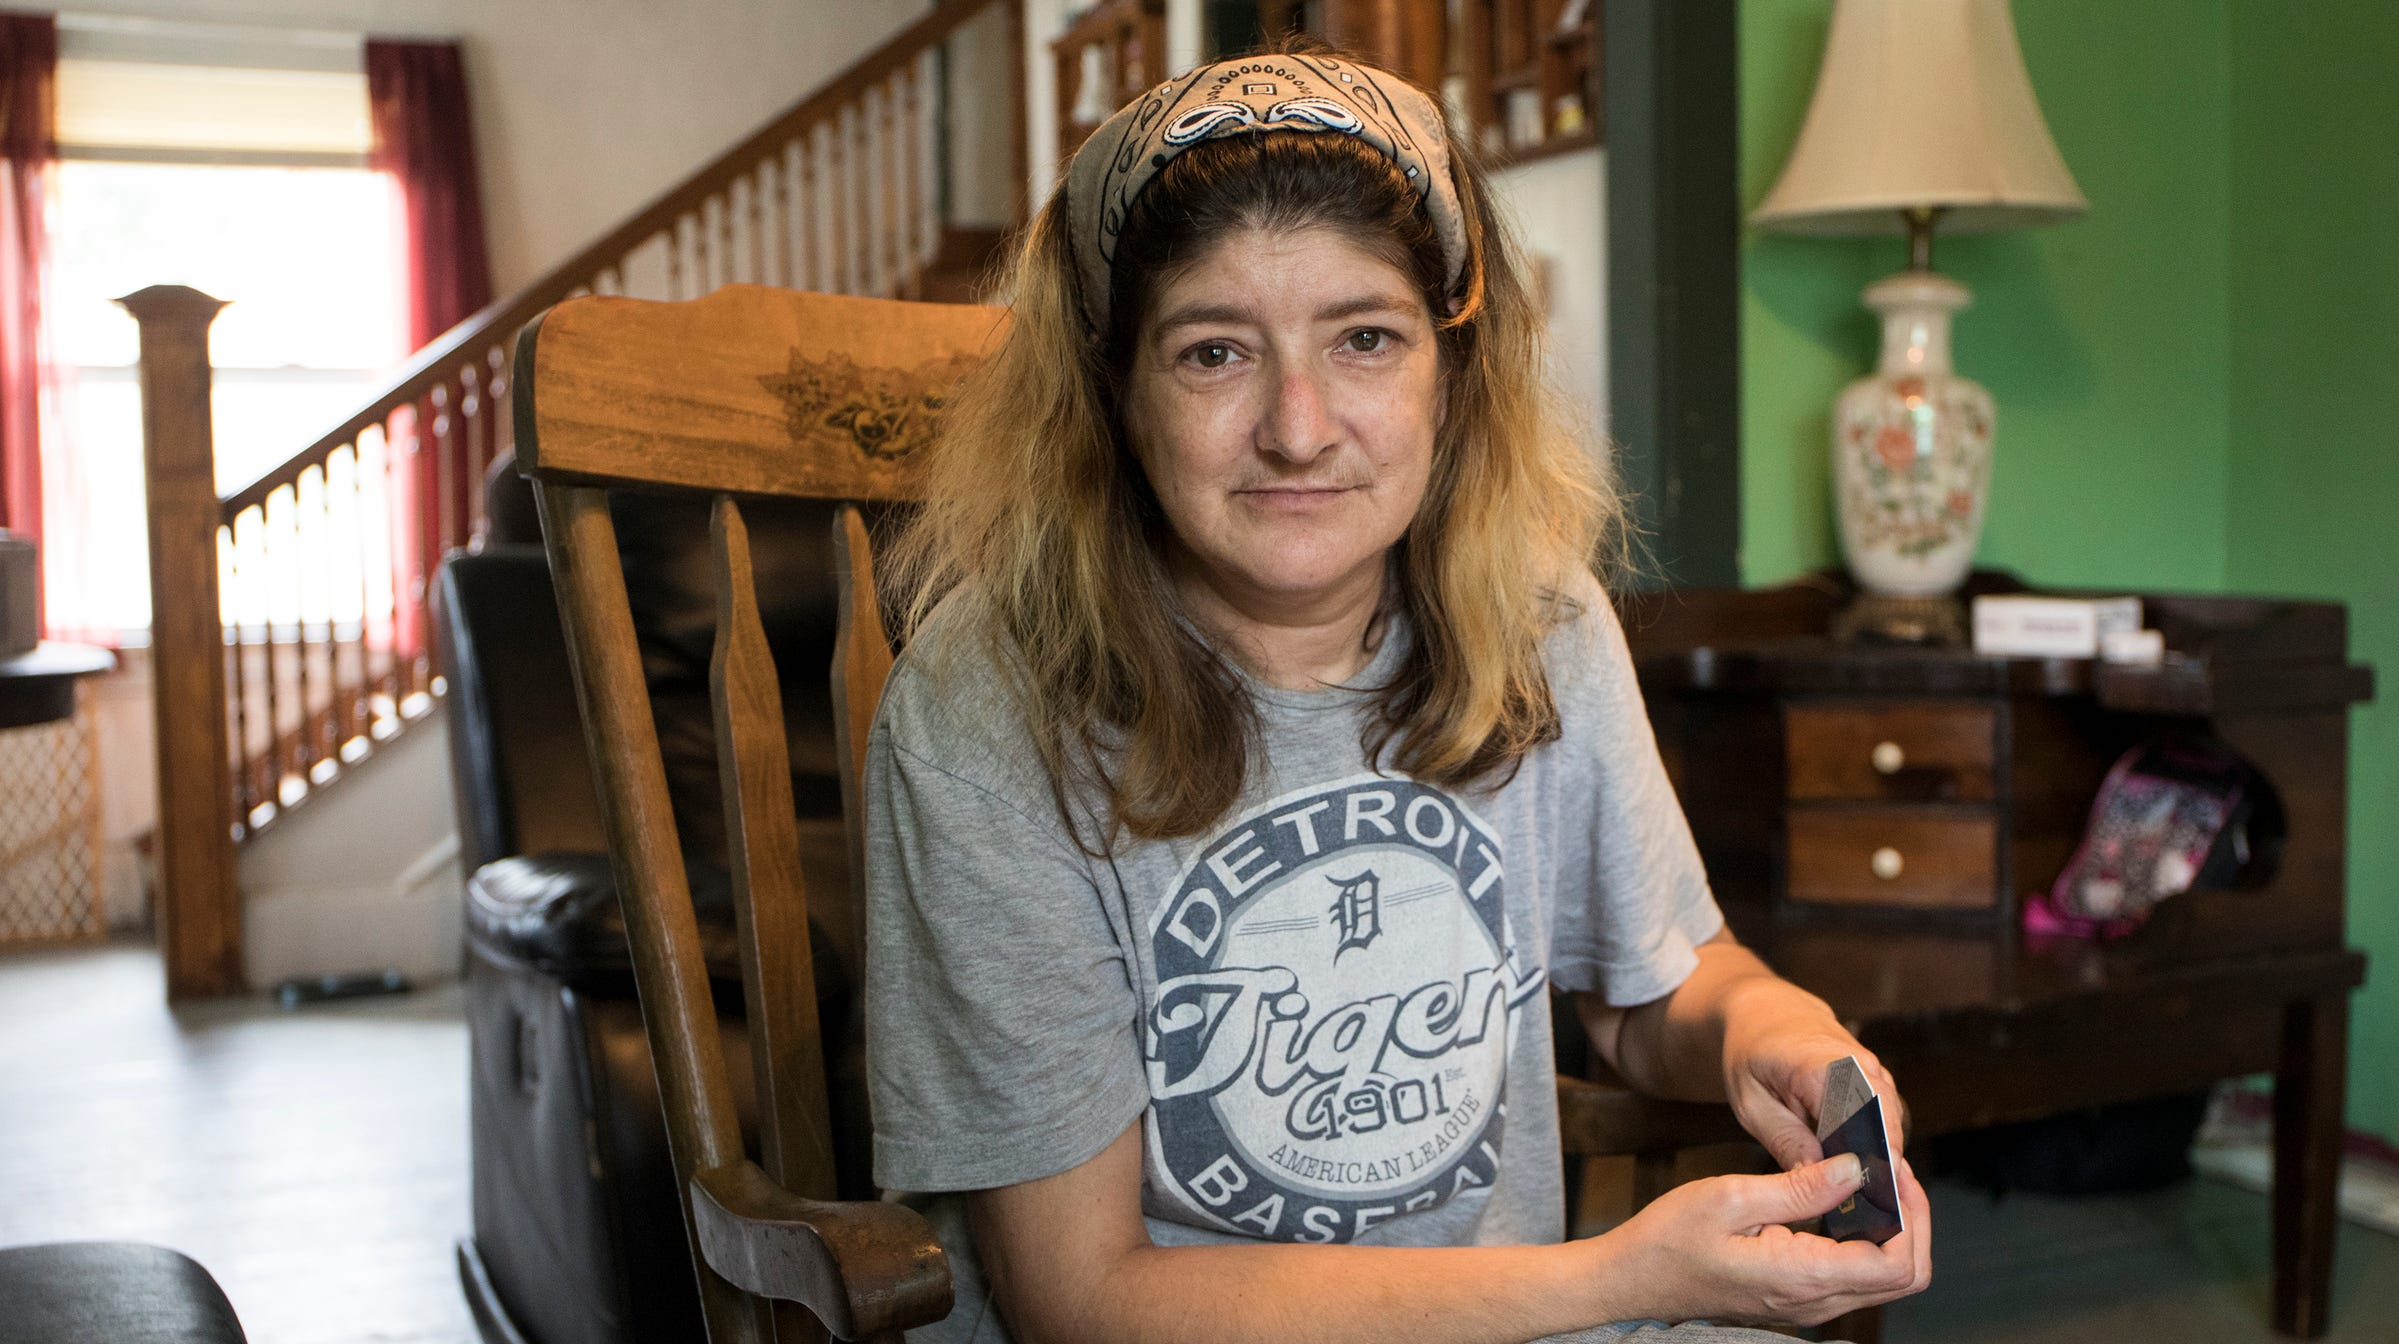 Tracey Taschereau, 48, who lost money to an account takeover scam, speaks with the Detroit Free Press from her home in Ypsilanti, Mich., Wednesday, September 12, 2018. She was trying to get a loan to cover bills but so far has ended up in the red for more than $3,200 after she shopped for loans online.